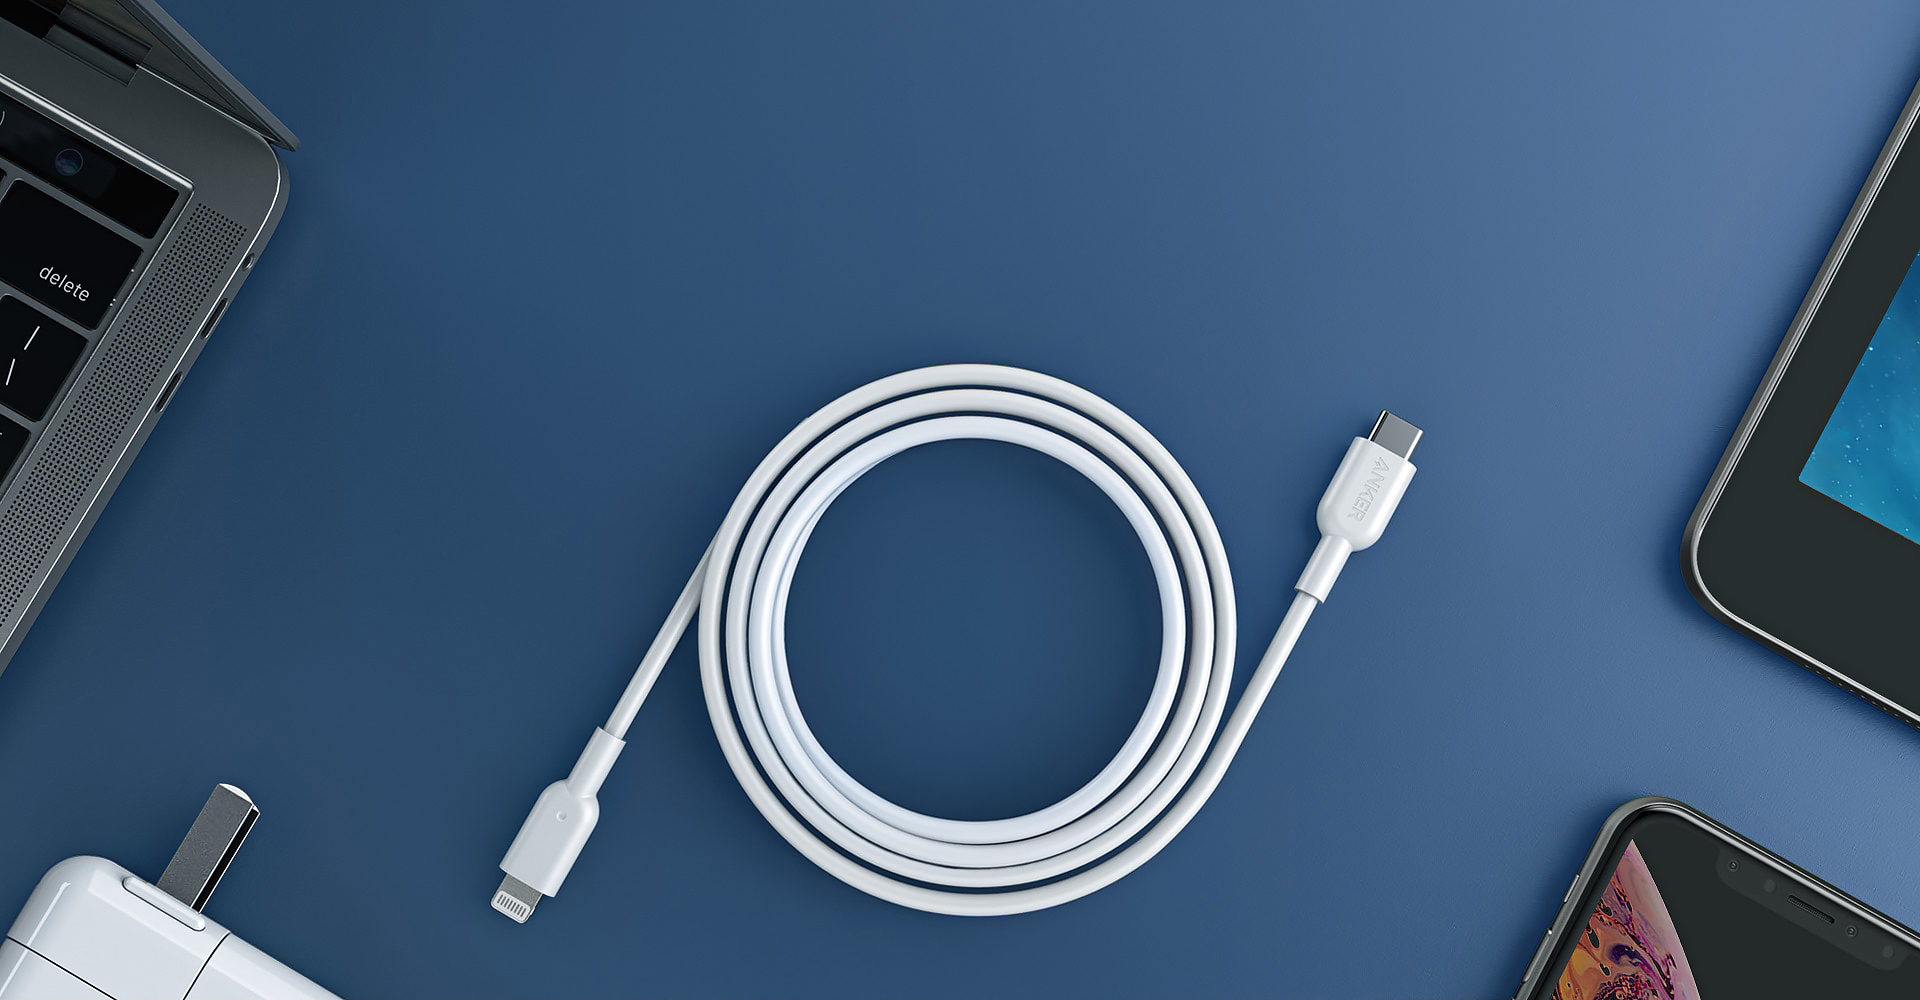 Anker launches USB-C to Lightning Cable, undercutting Apple